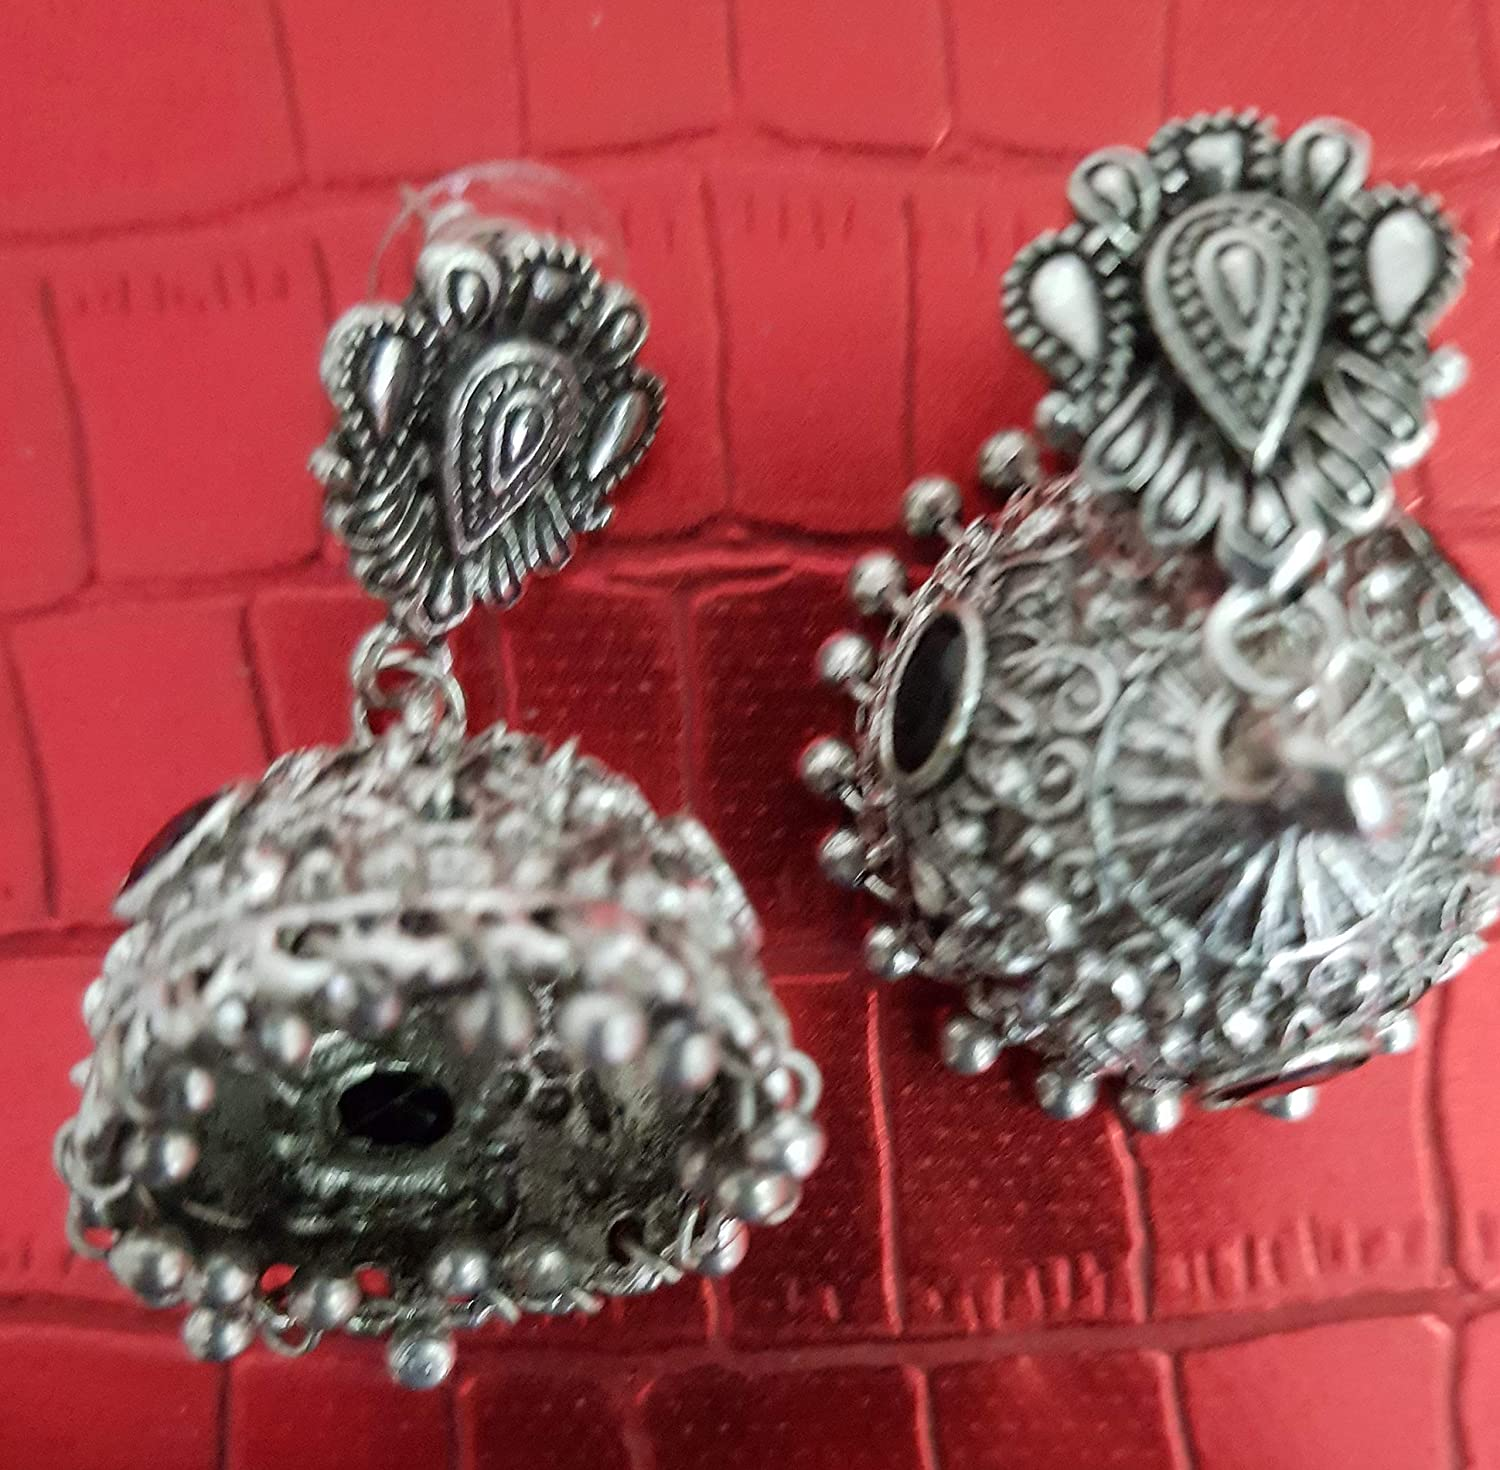 Sansar India Bollywood Three Level Beaded Oxidized Silver Plated Jhumkas Jhumki Indian Earrings Jewelry for Girls and Women